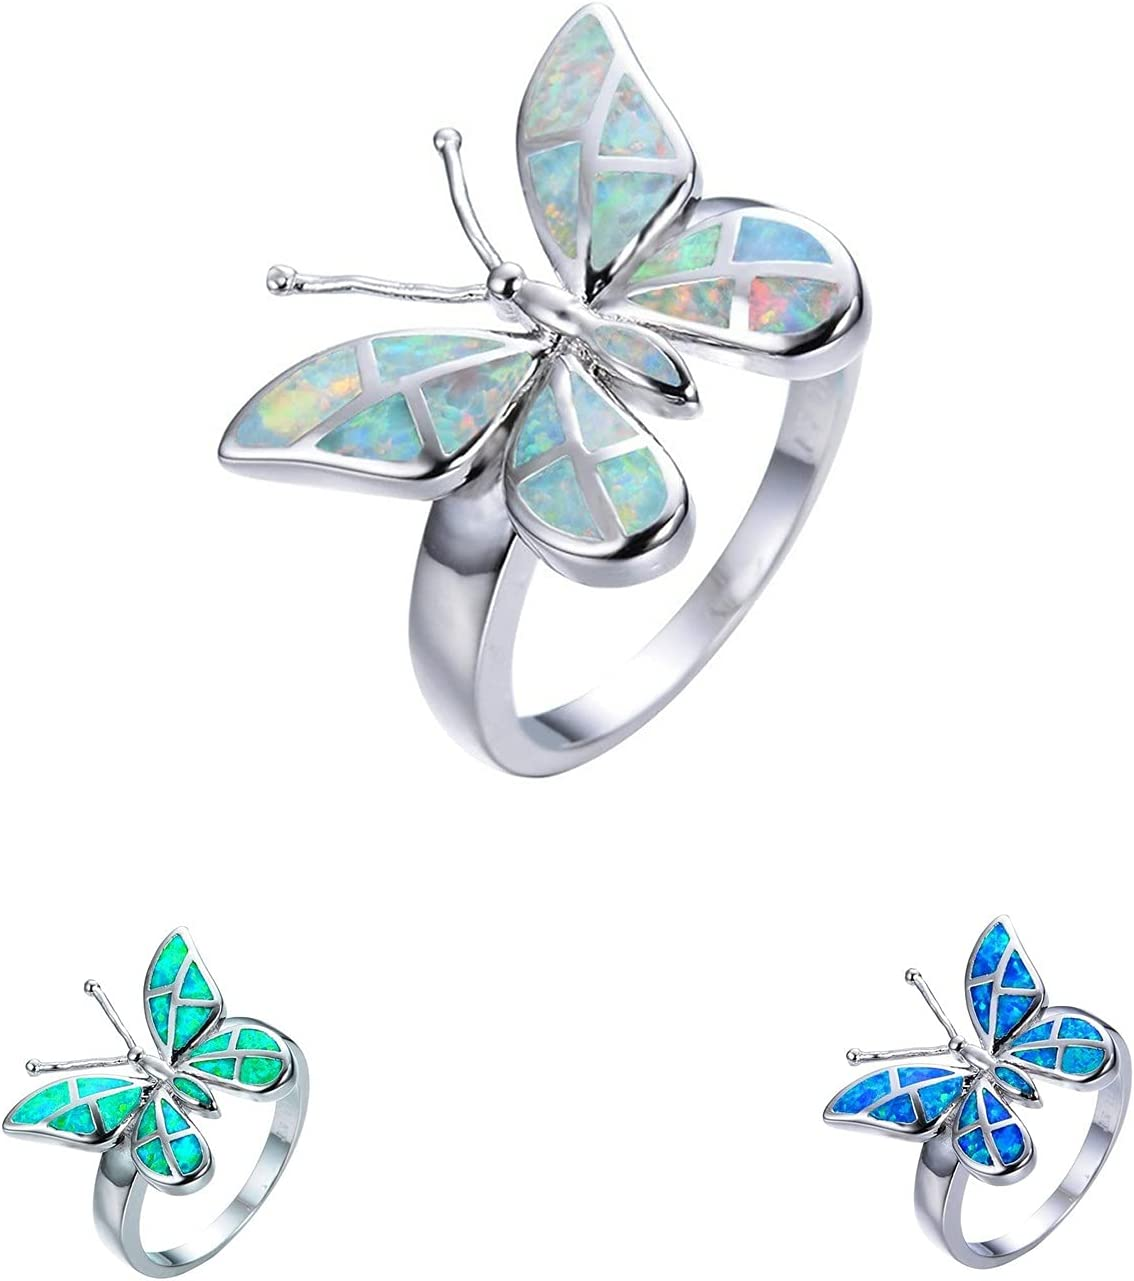 Mulyyds Butterfly Ring Solitaire Brand new Engagement Women for Popular overseas Her